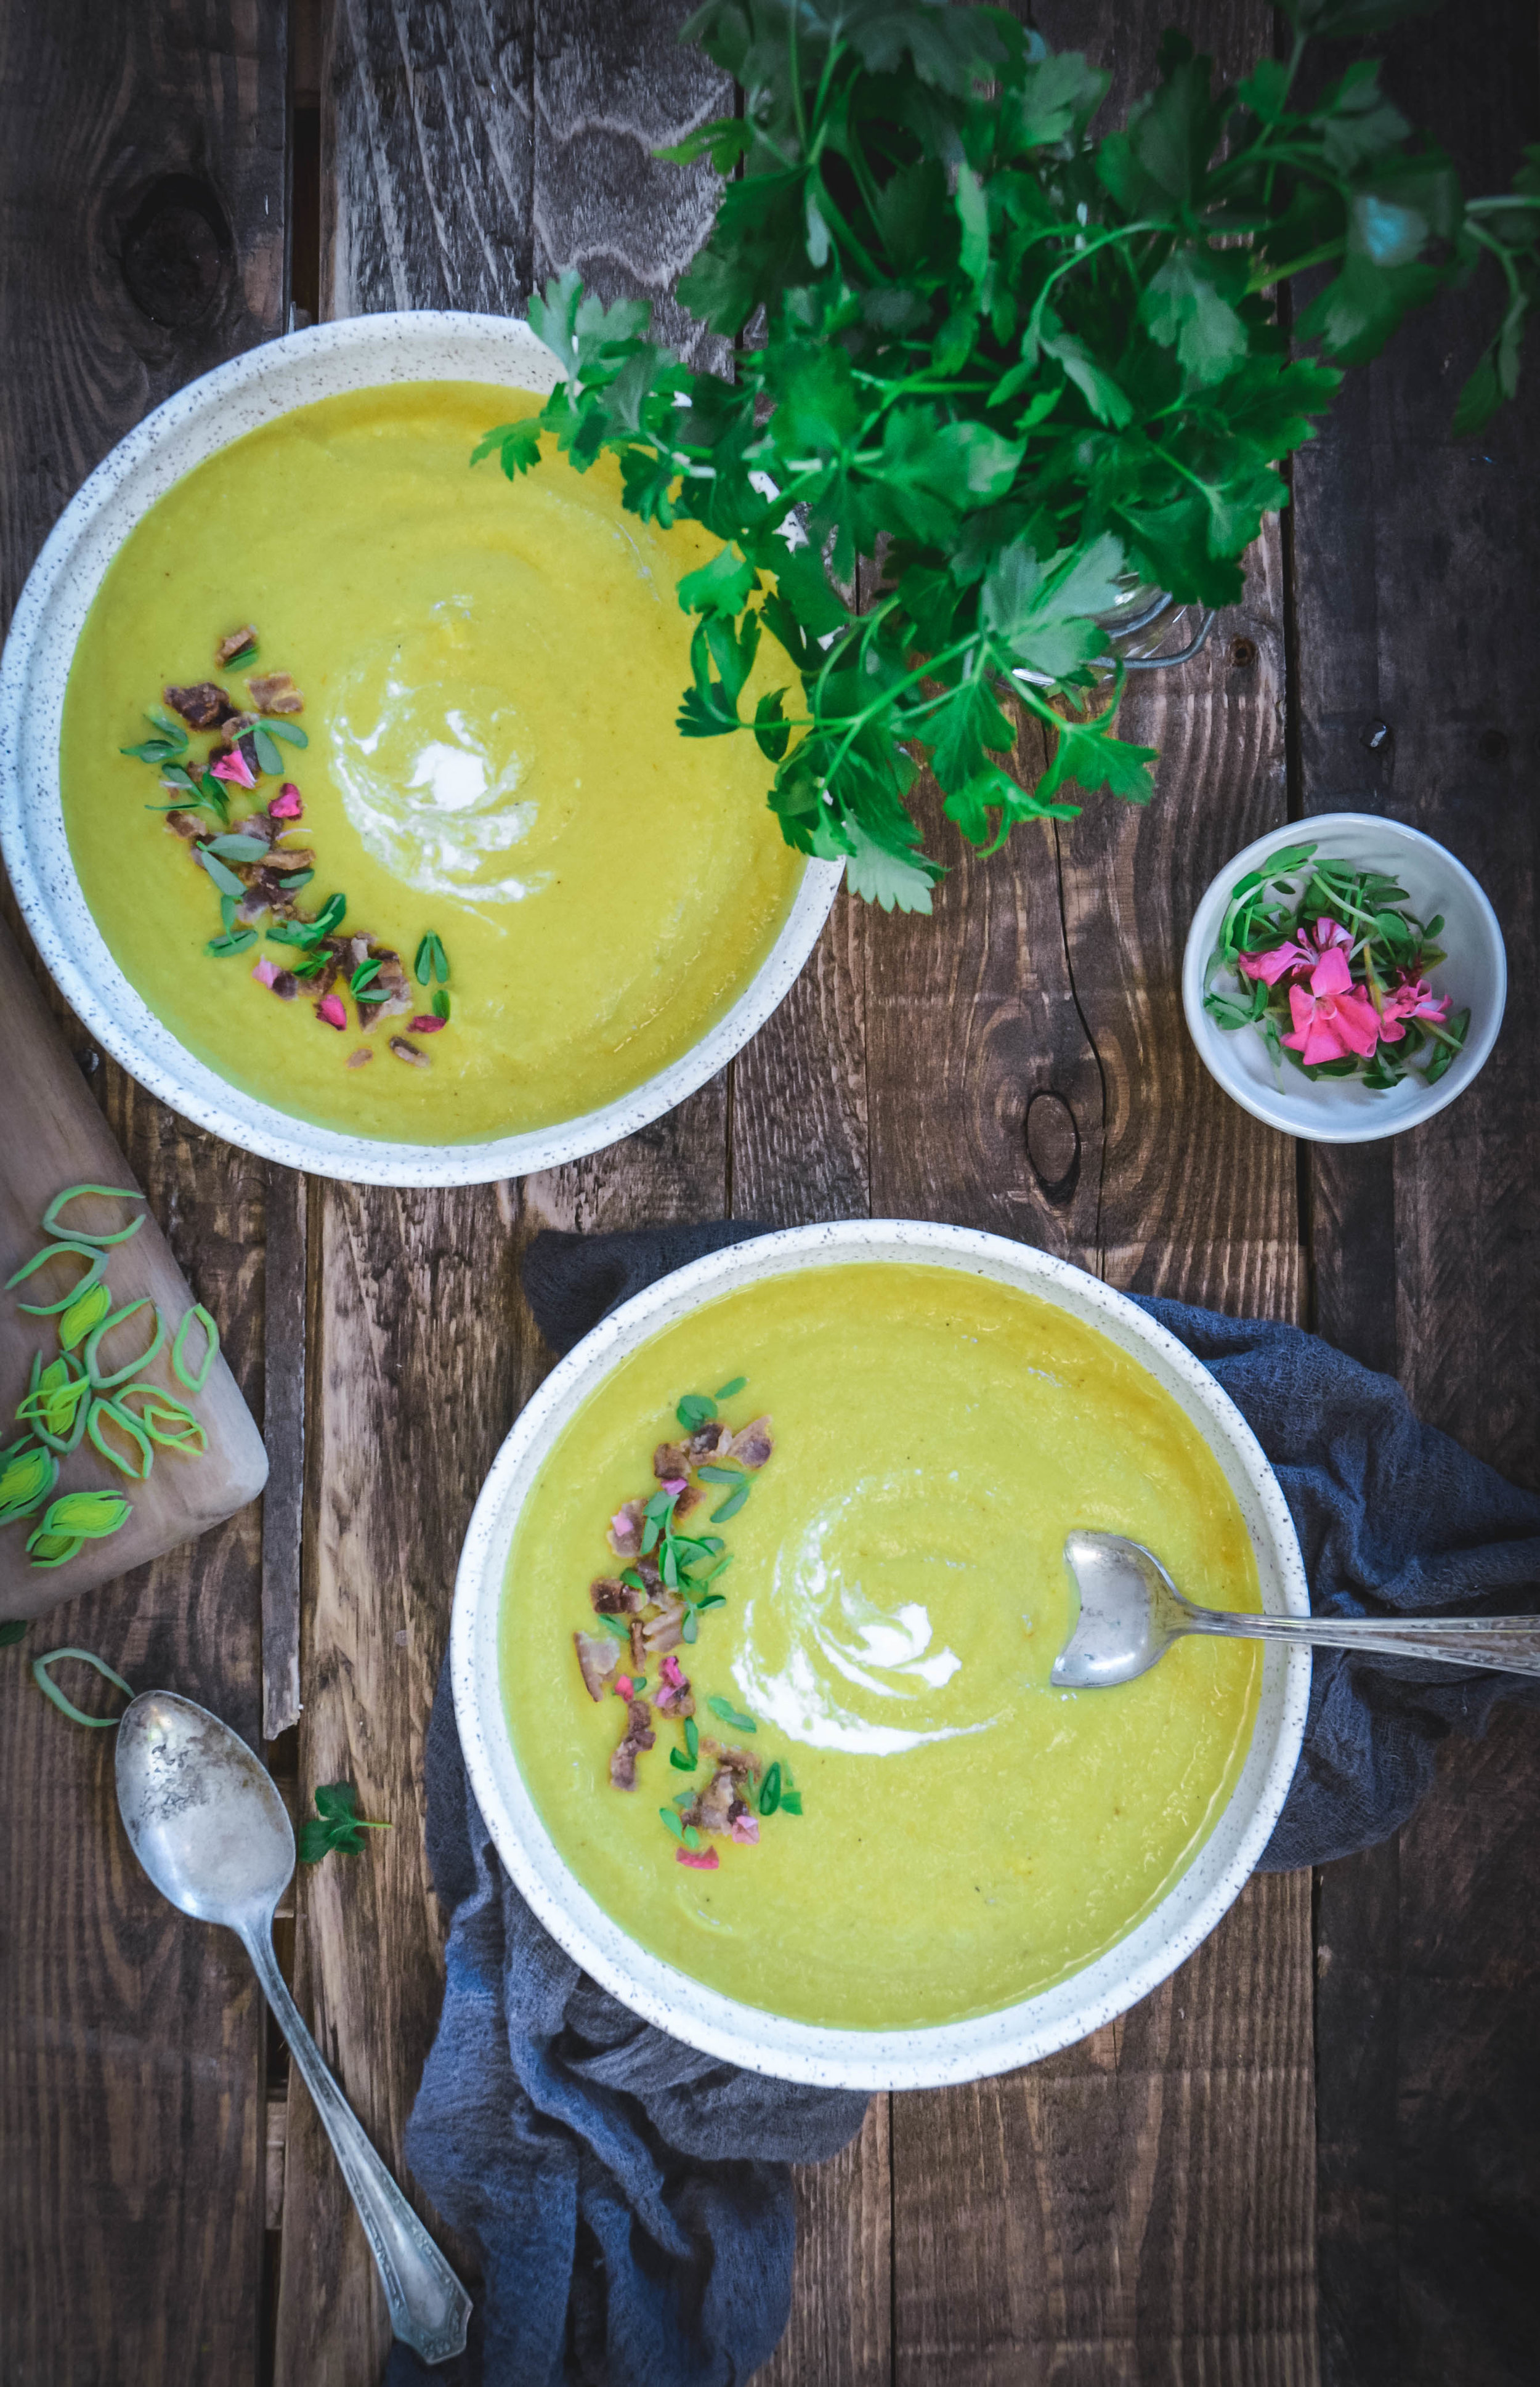 This cauliflower soup is loaded with spices and flavor. It's a creamy, velvety soup perfect anytime of year. It can easily be customized to fit a vegan lifestyle by skipping the bacon entirely. #cauliflowersoup, #whole30soup, #whole30 #paleo #vegan #turmeric #ginger #calmeats #spices #soup #lunchideas #dinnerrecipes #freshrecipes #paleorecipes #whole30recipes #glutenfree #dairyfreesoup #dairyfree